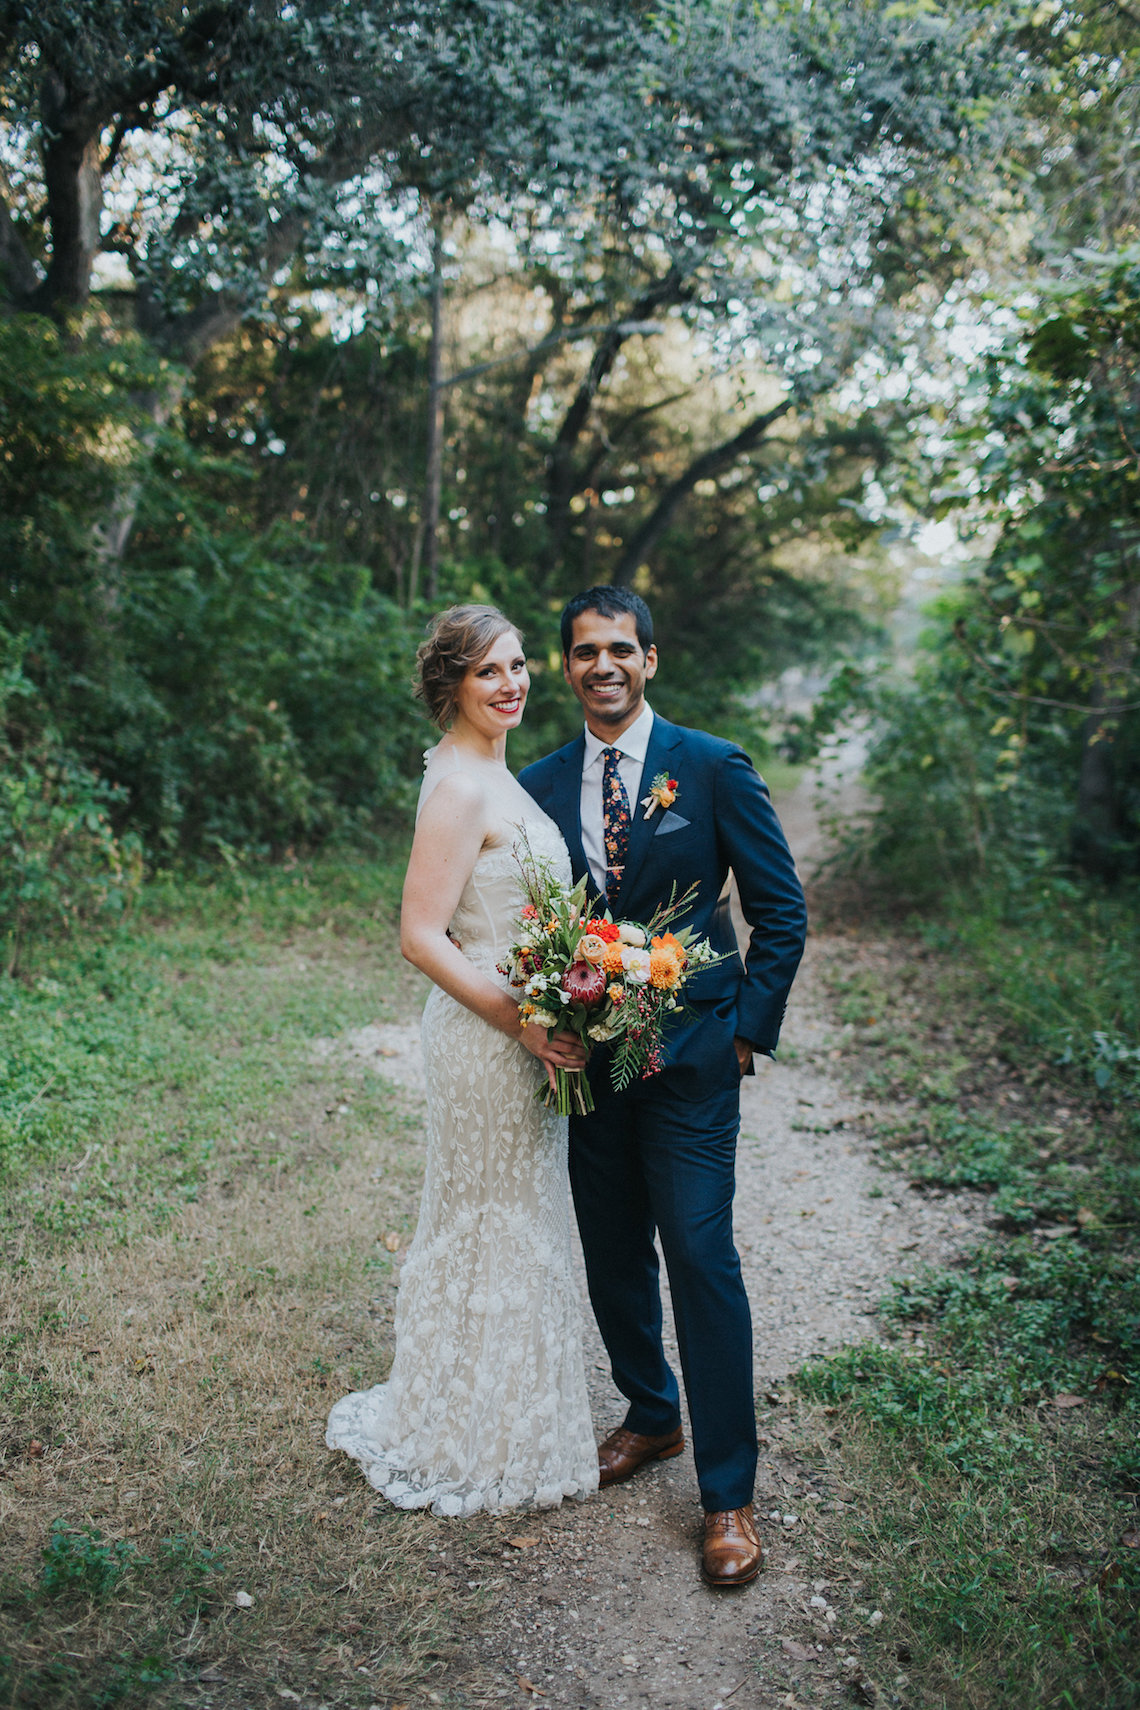 Colorful & Eclectic Americana Wedding in Texas | Amber Vickery Photography 48